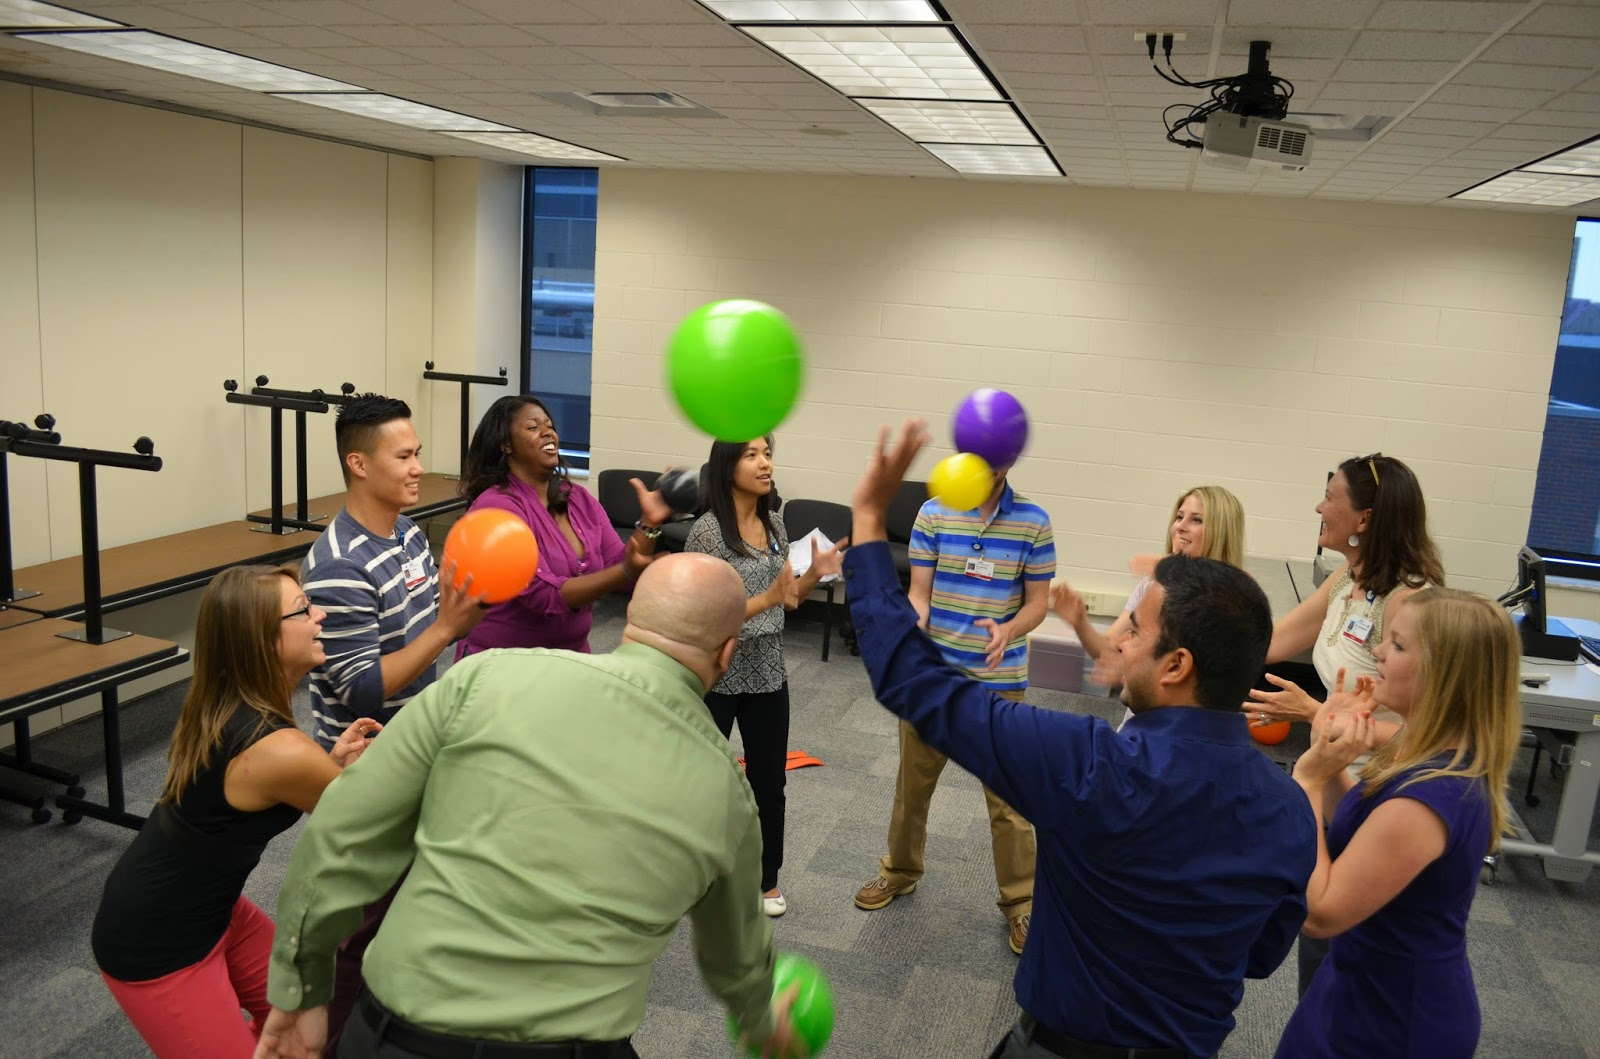 Team Building Exercise For Work